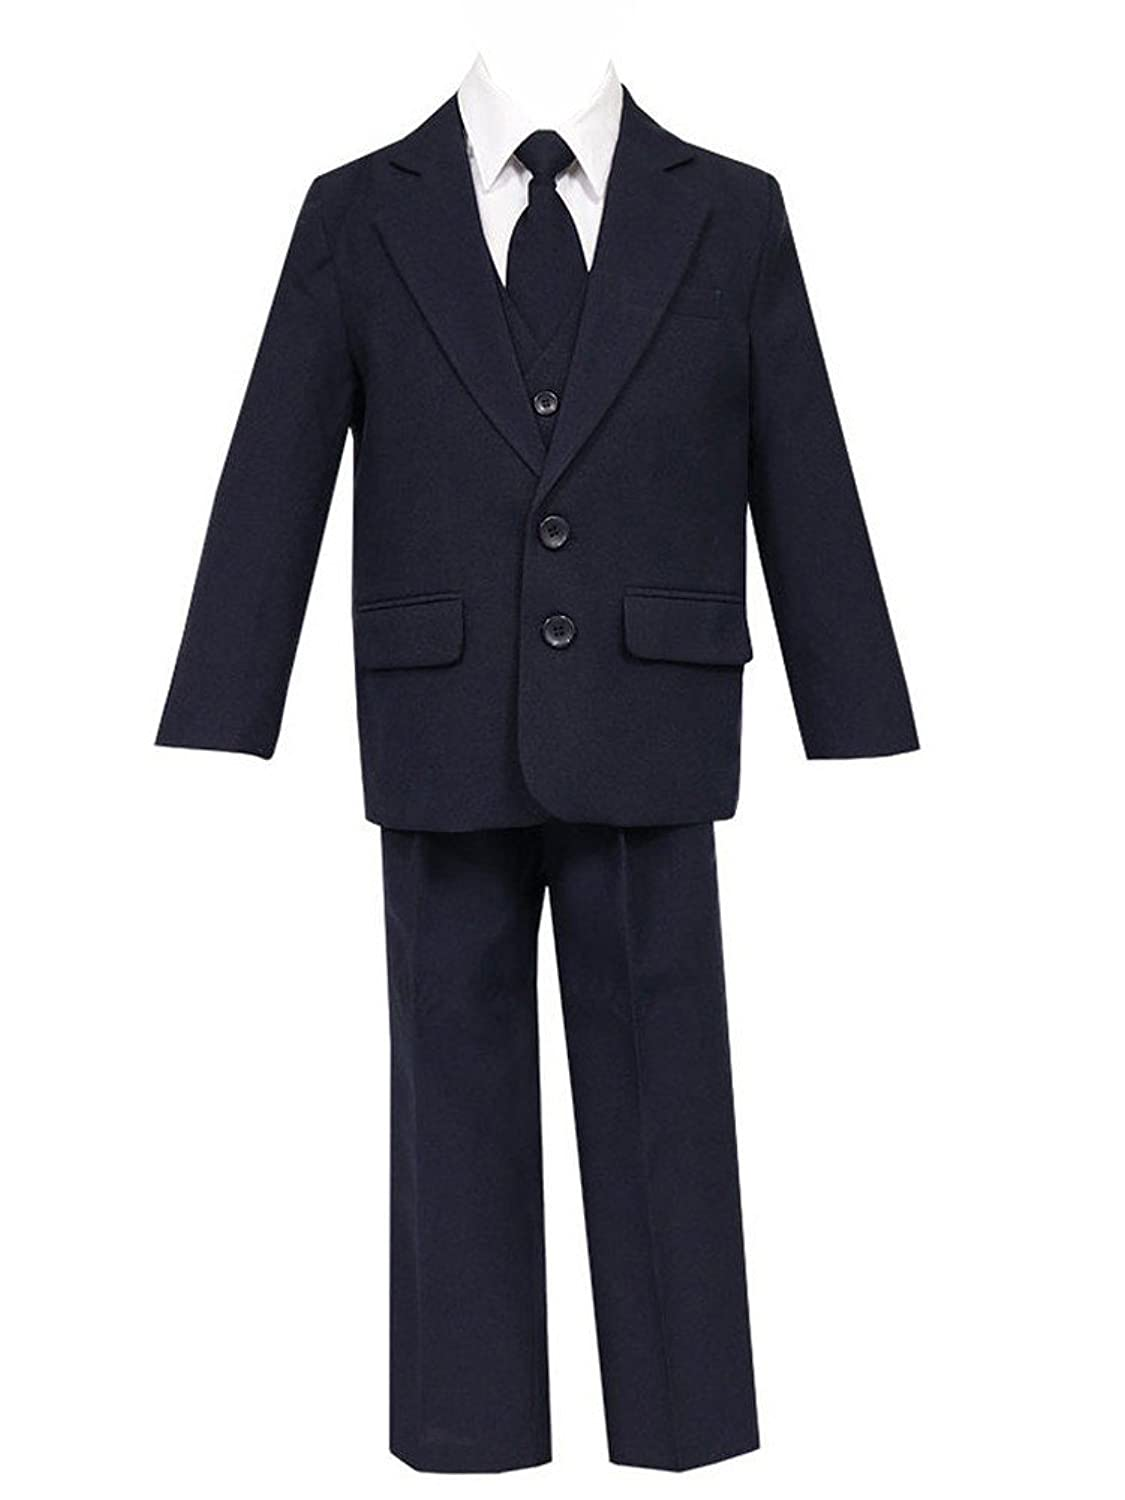 Calla Collection USA SUIT ボーイズ